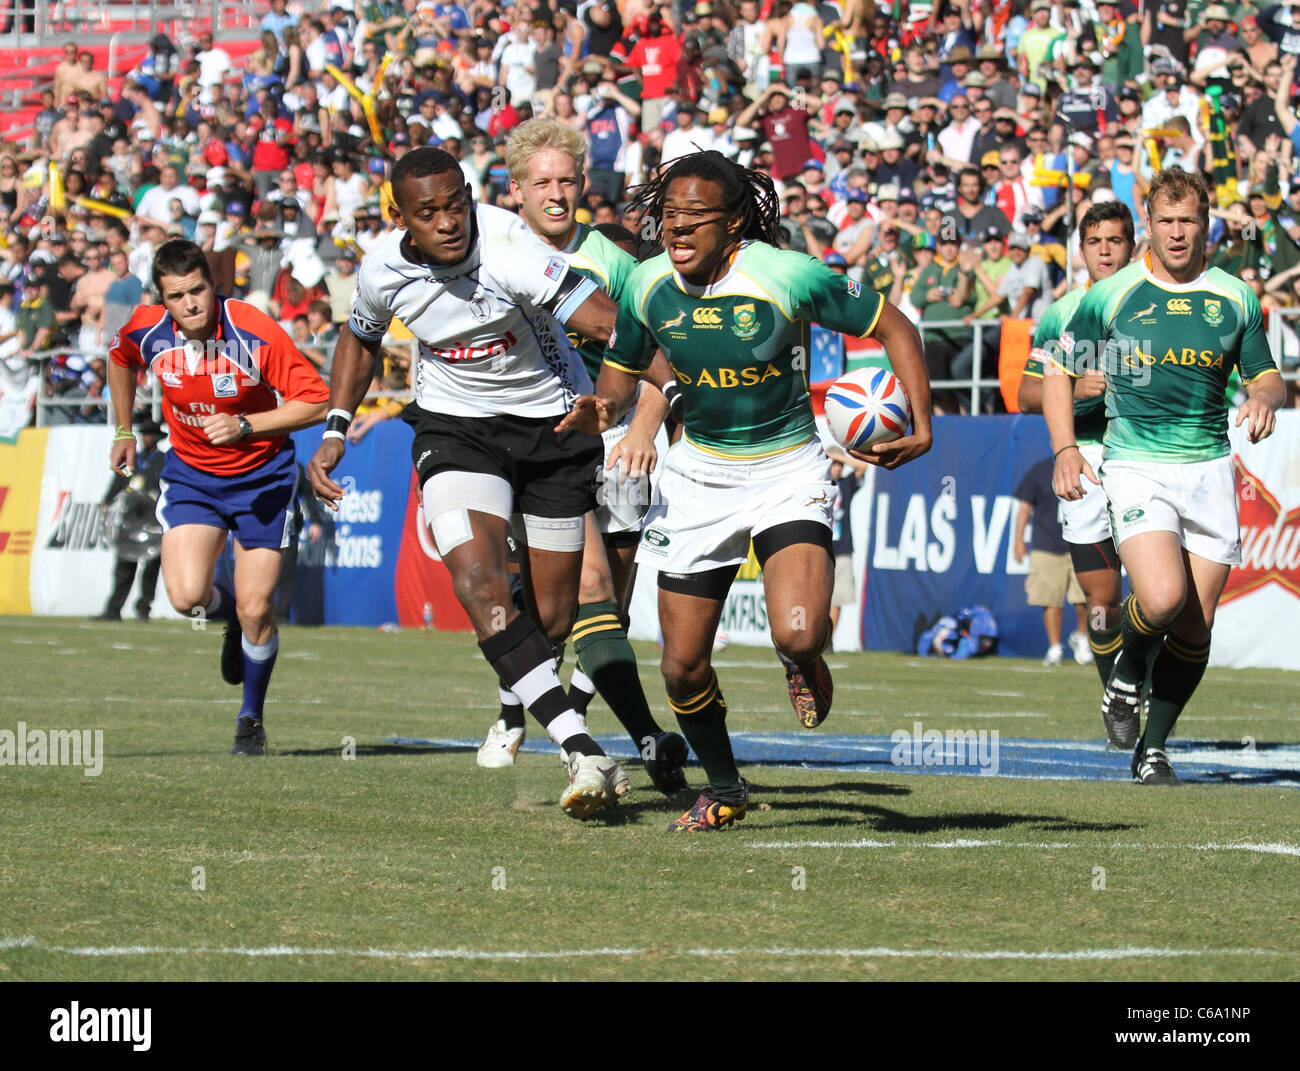 Mitieli Nacagilevu of Fiji, Cecil Afrika of South Africa at a public appearance for The 2011 USA Sevens Rugby Tournament - Stock Image